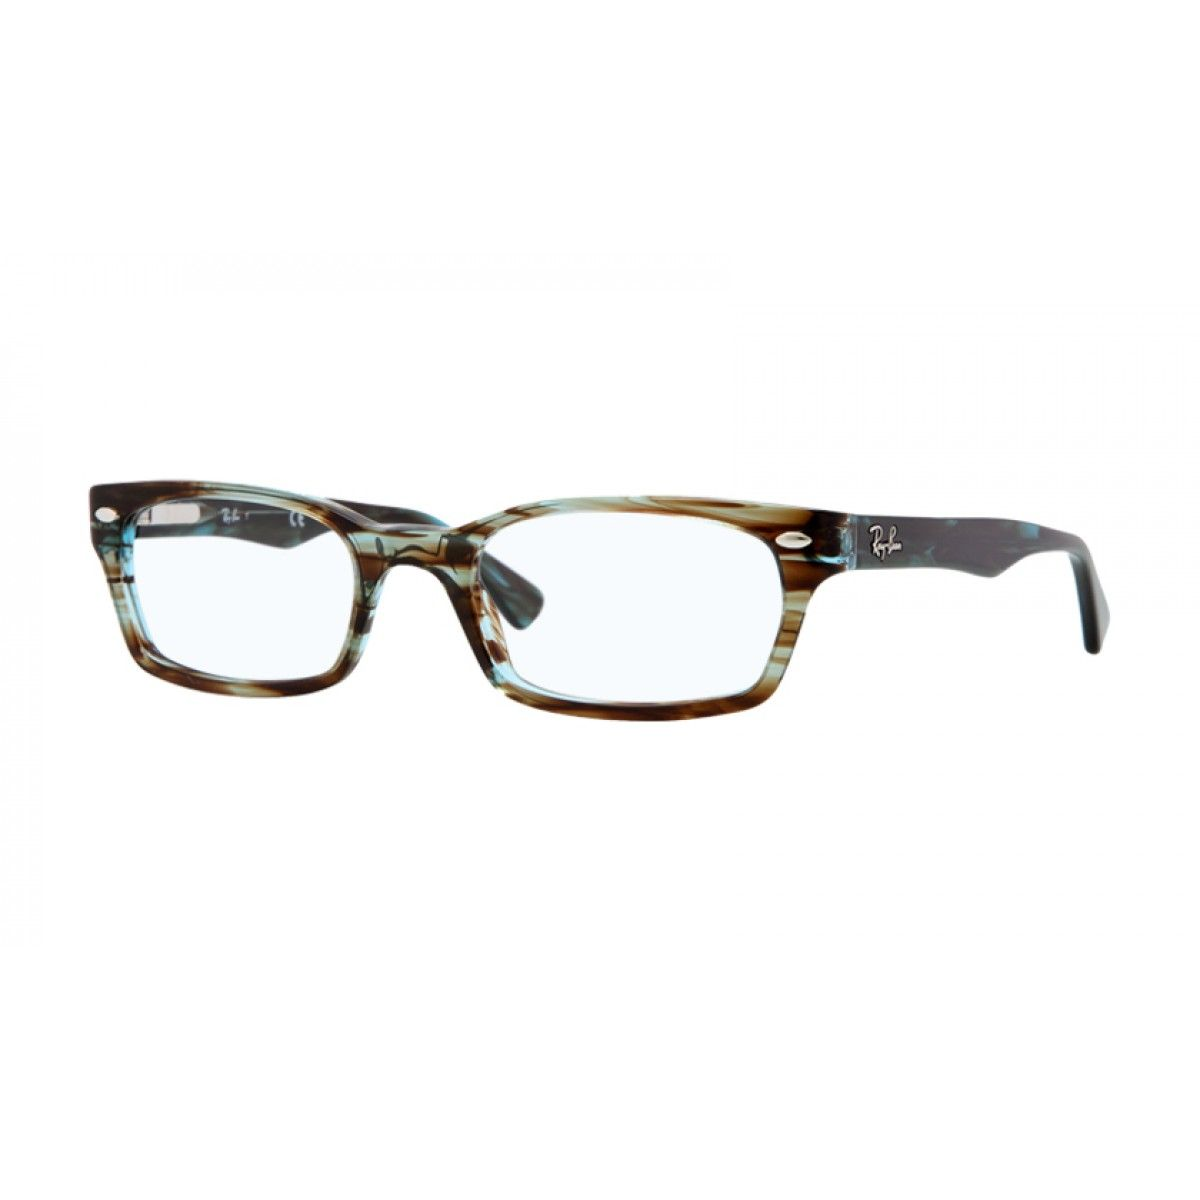 56066801d87 Ray Ban RB5150 Glasses